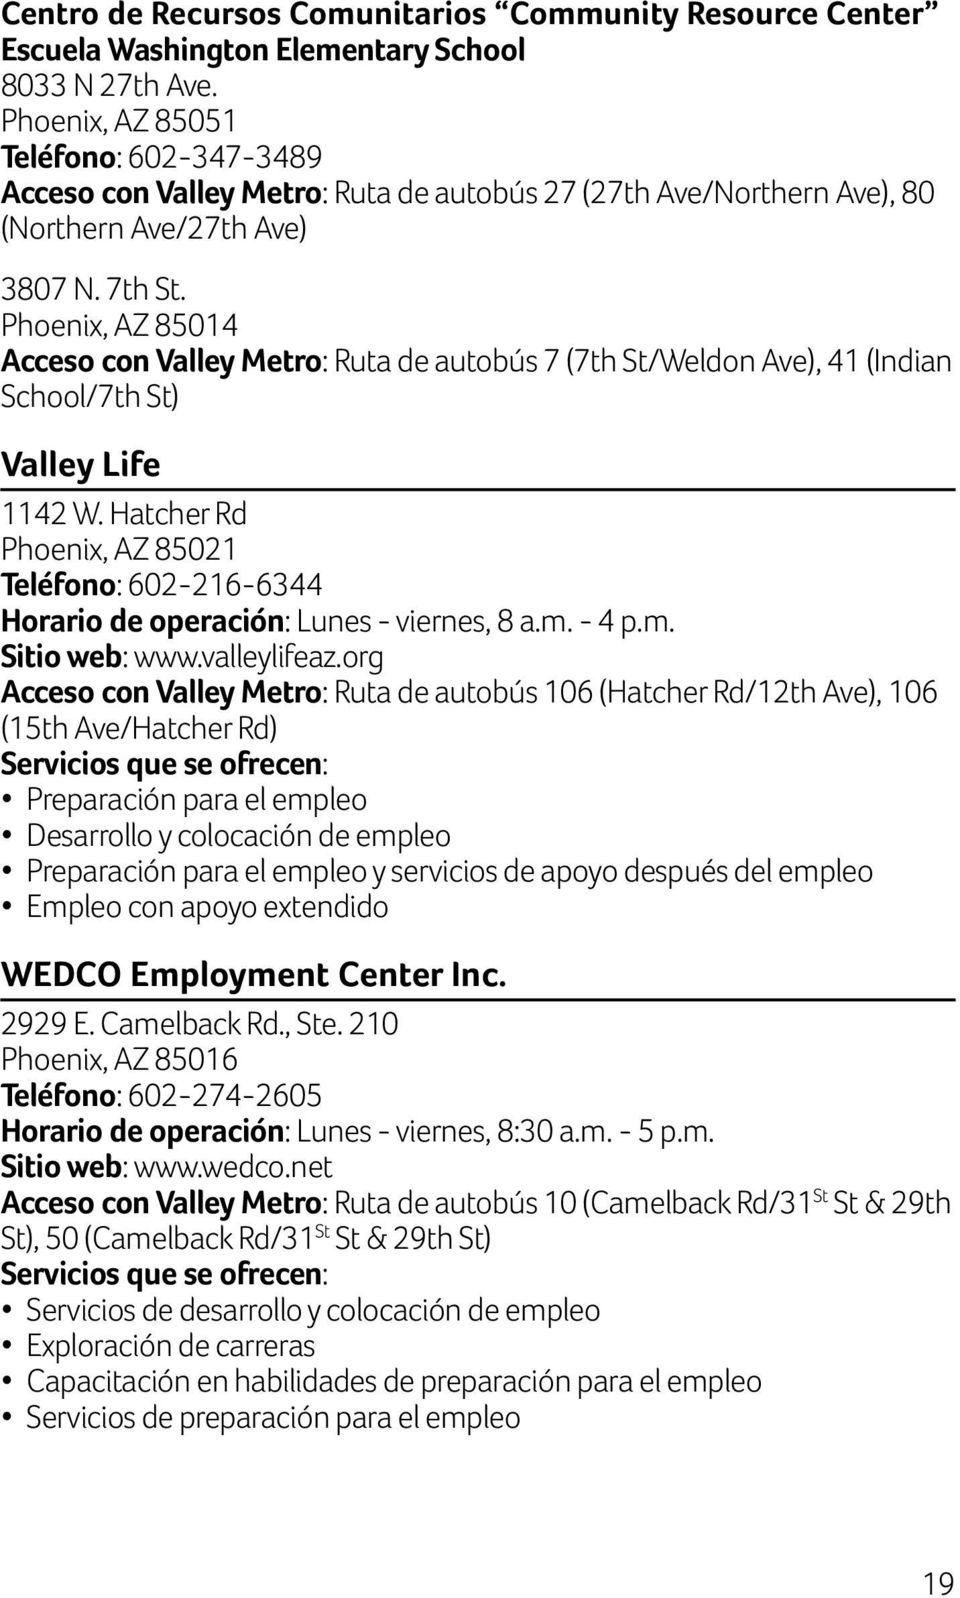 Phoenix, AZ 85014 Acceso con Valley Metro: Ruta de autobús 7 (7th St/Weldon Ave), 41 (Indian School/7th St) Valley Life 1142 W.